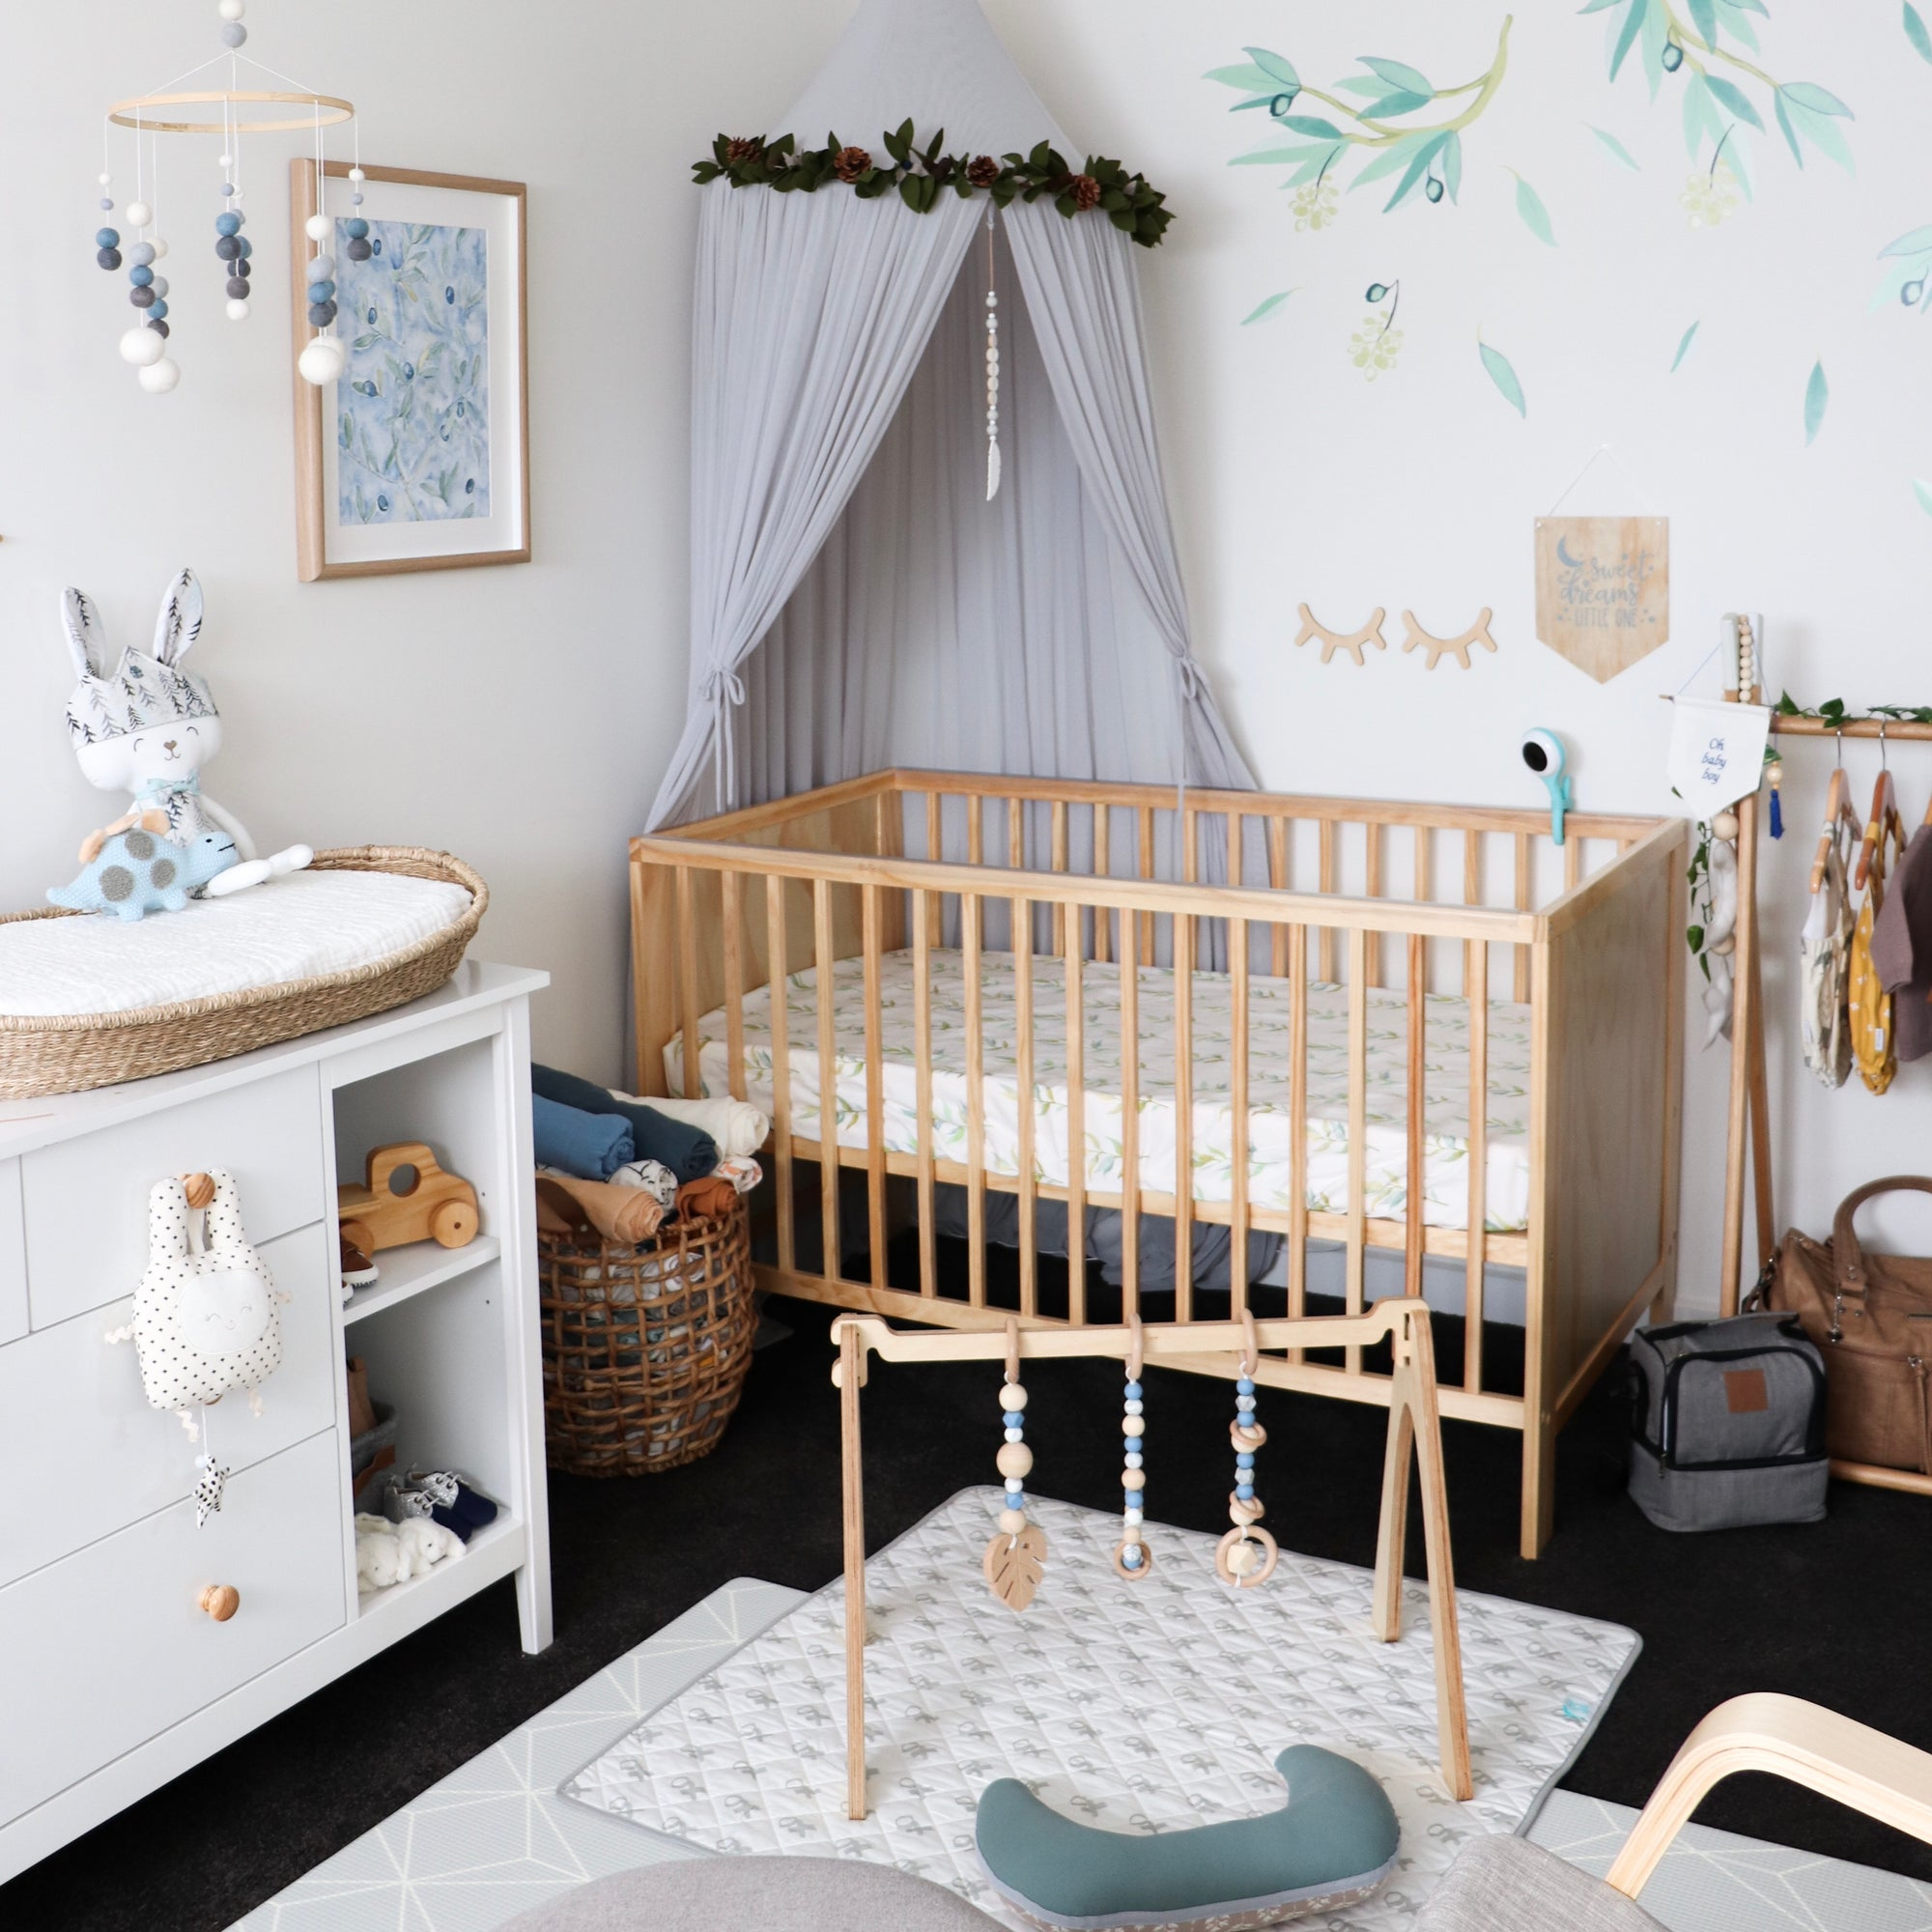 Tegan's Nursery Reveal - Modern and Stylish